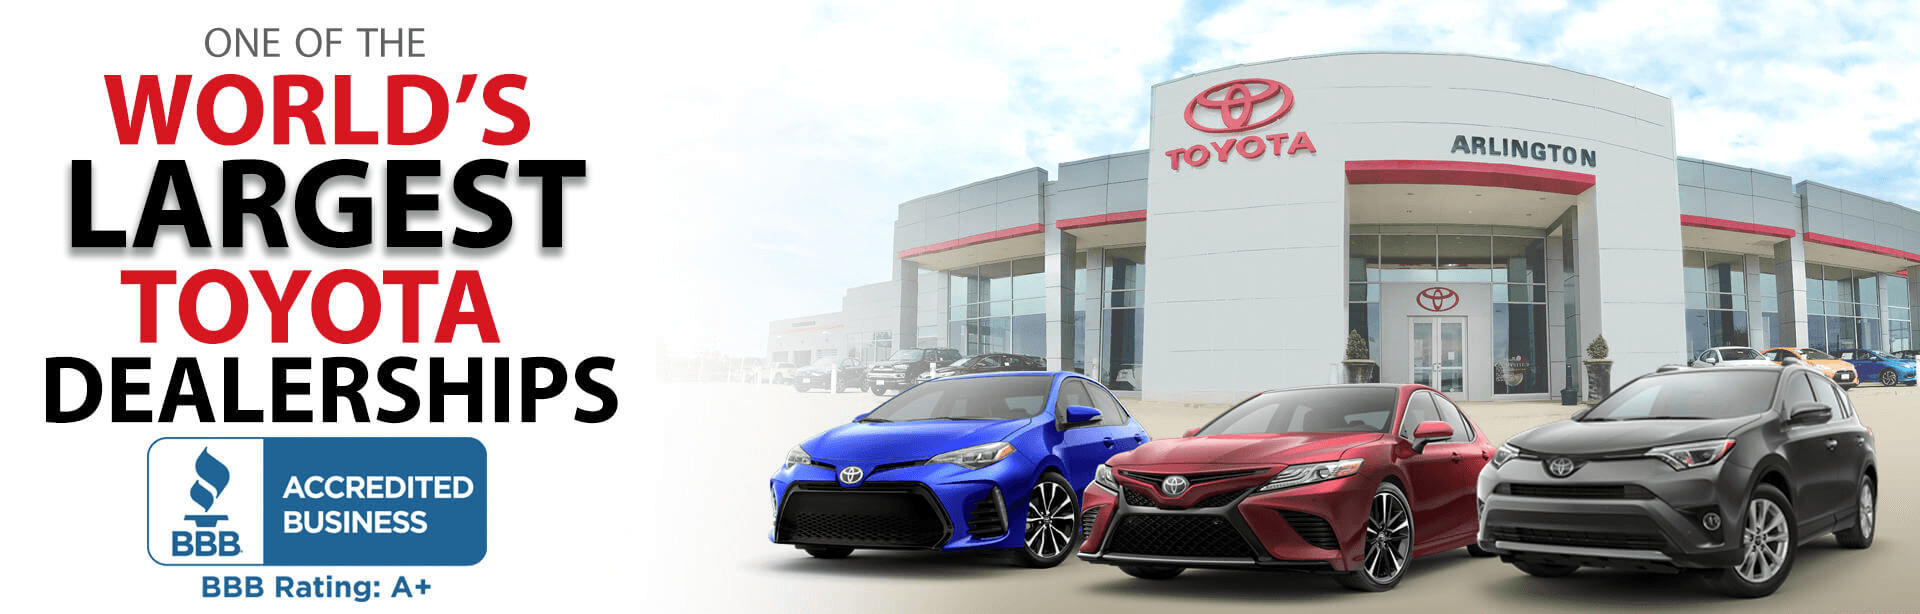 Toyota Arlington Dealership